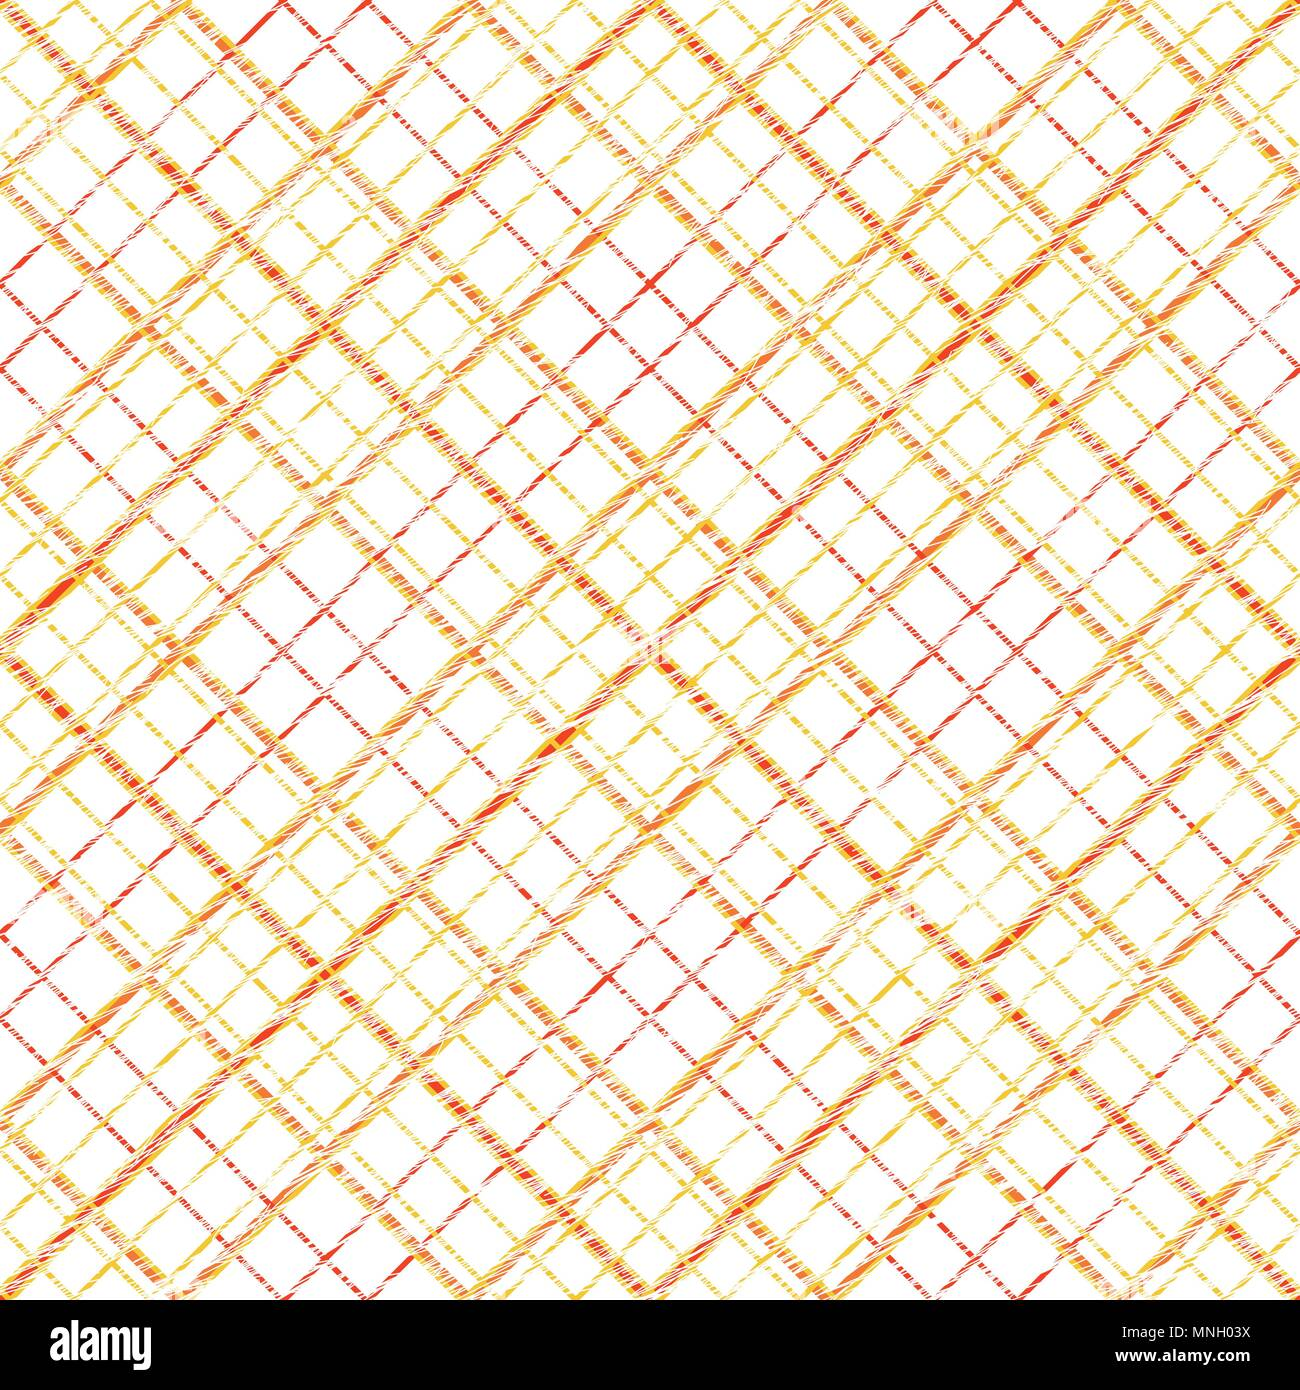 Seamless Pattern For Wallpaper Web Page Background Surface Textures Grungy Tartan Brush Strokes Fills Abstract Backdrop Simple Checkere